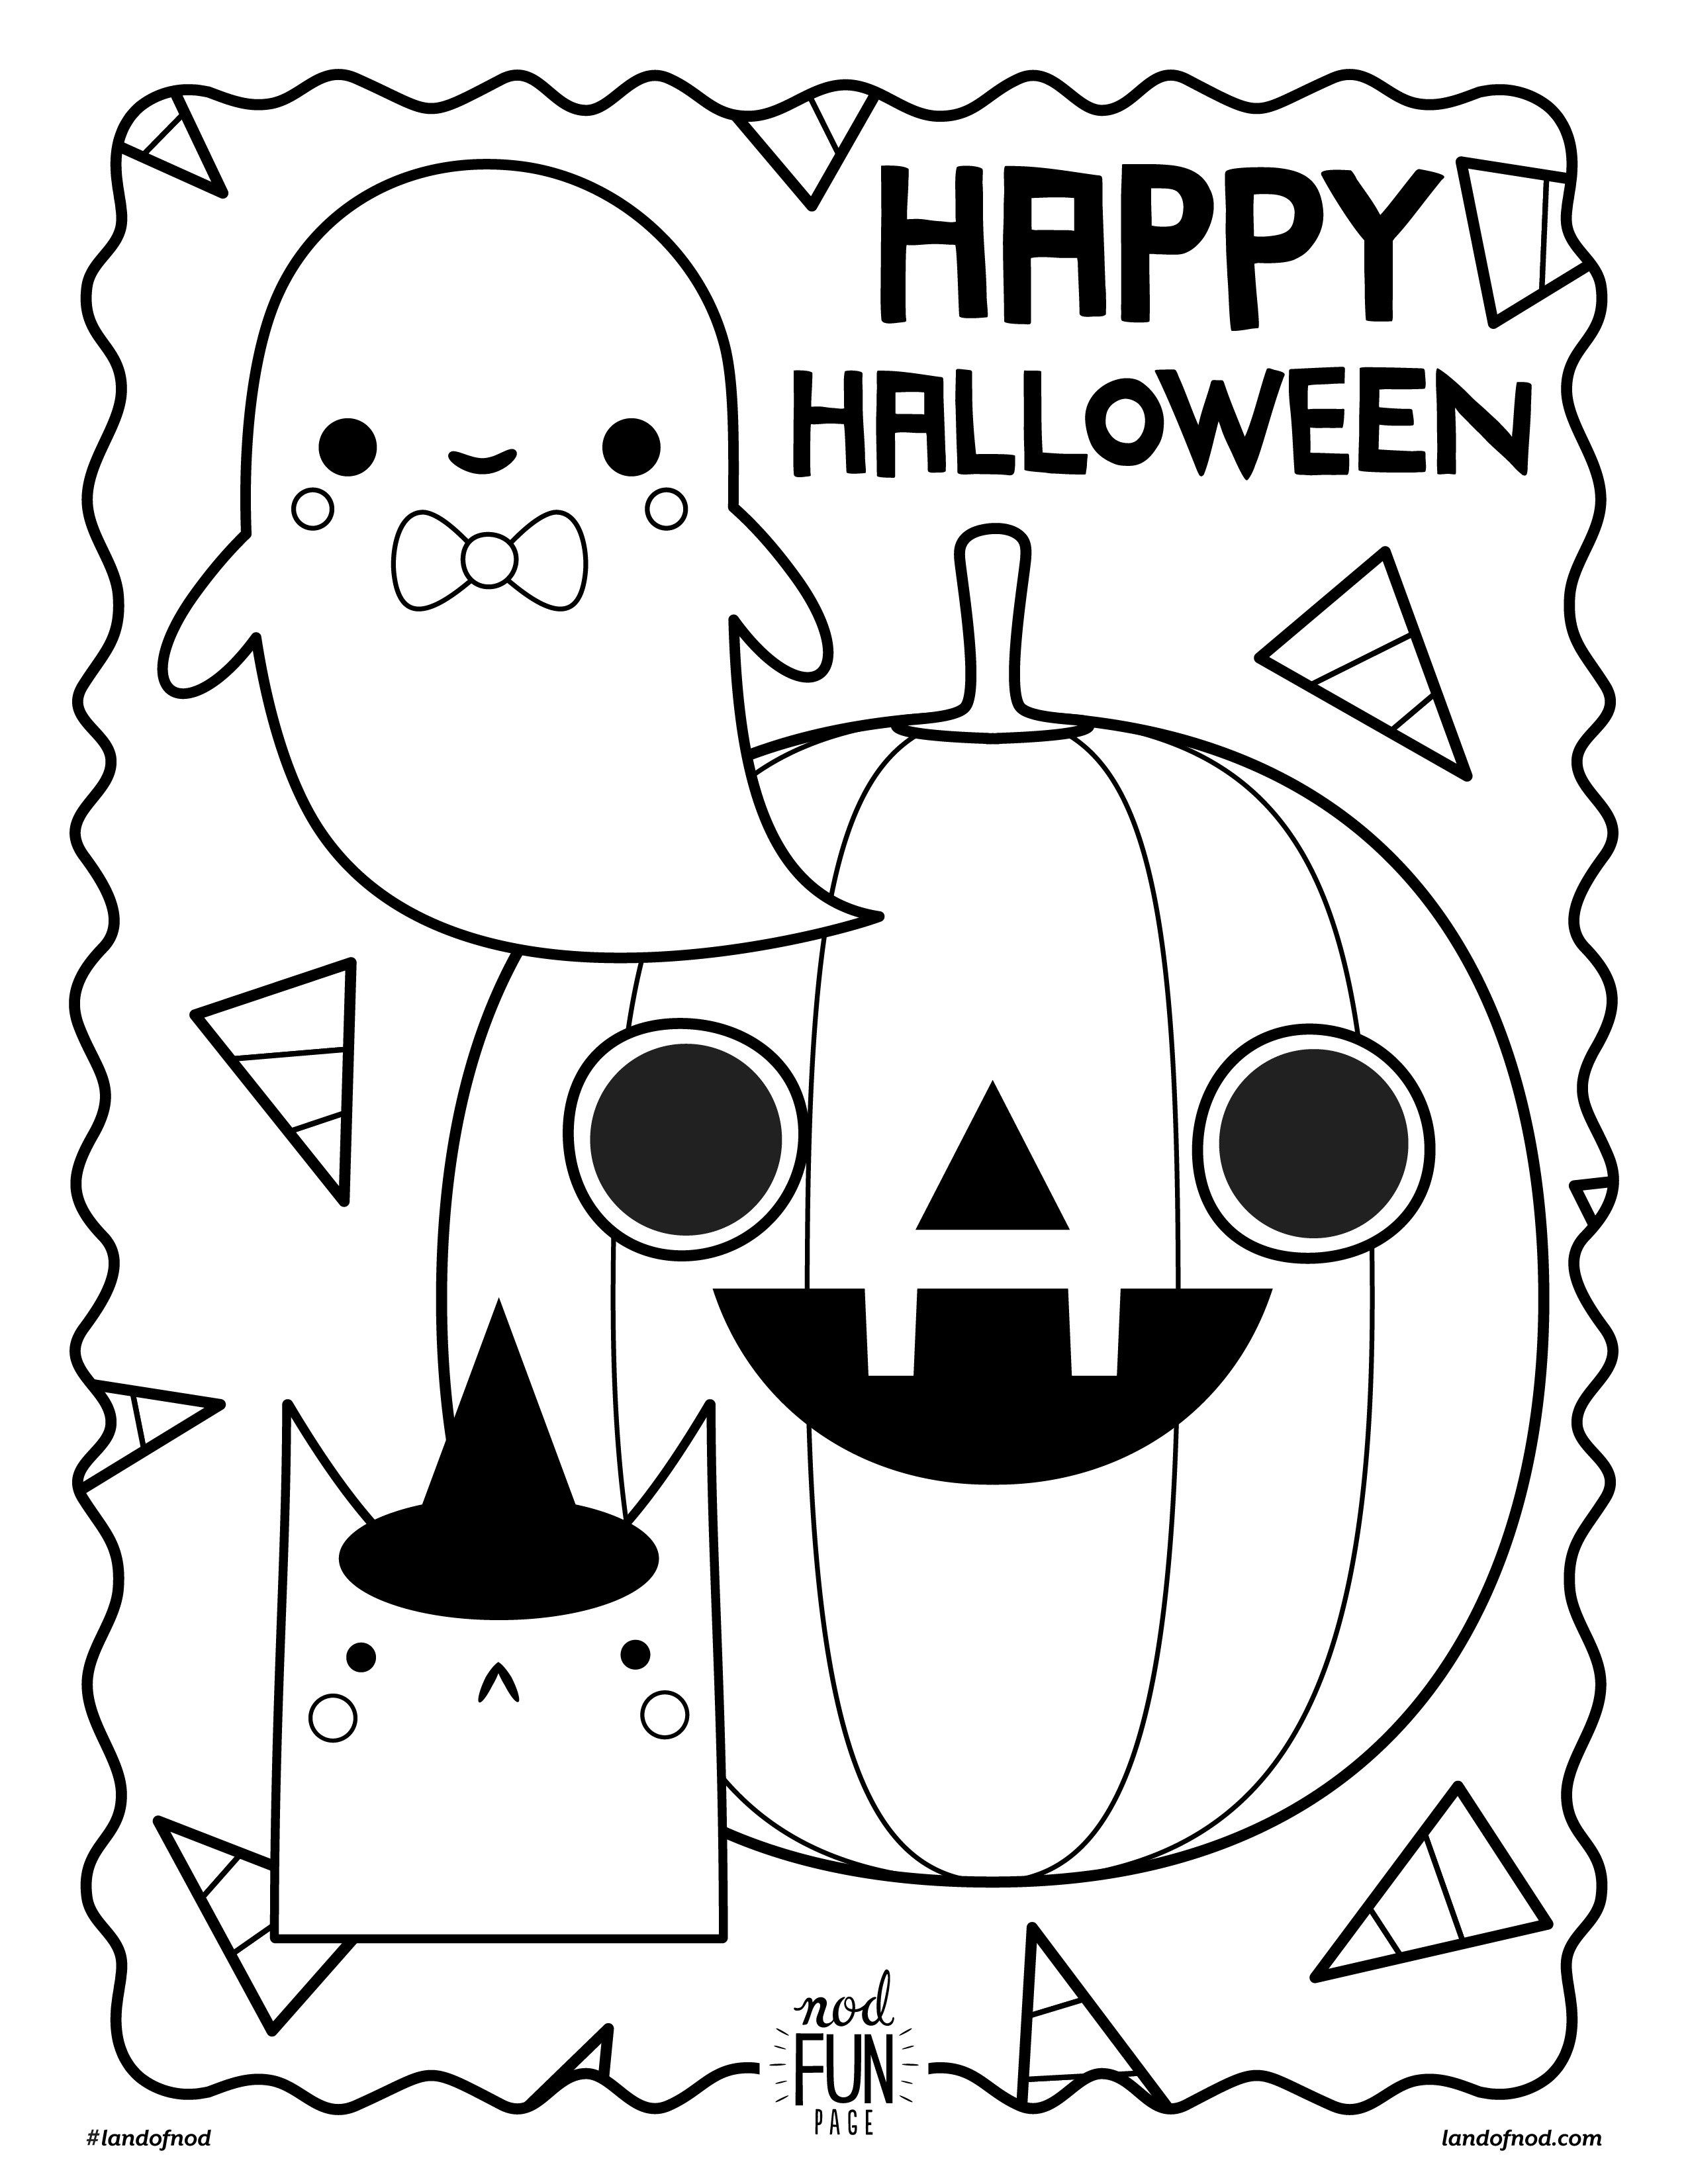 Cute Halloween Coloring Pages Printable Coloring Pages Cute Halloween Bats Coloringges Free Printable Pdf